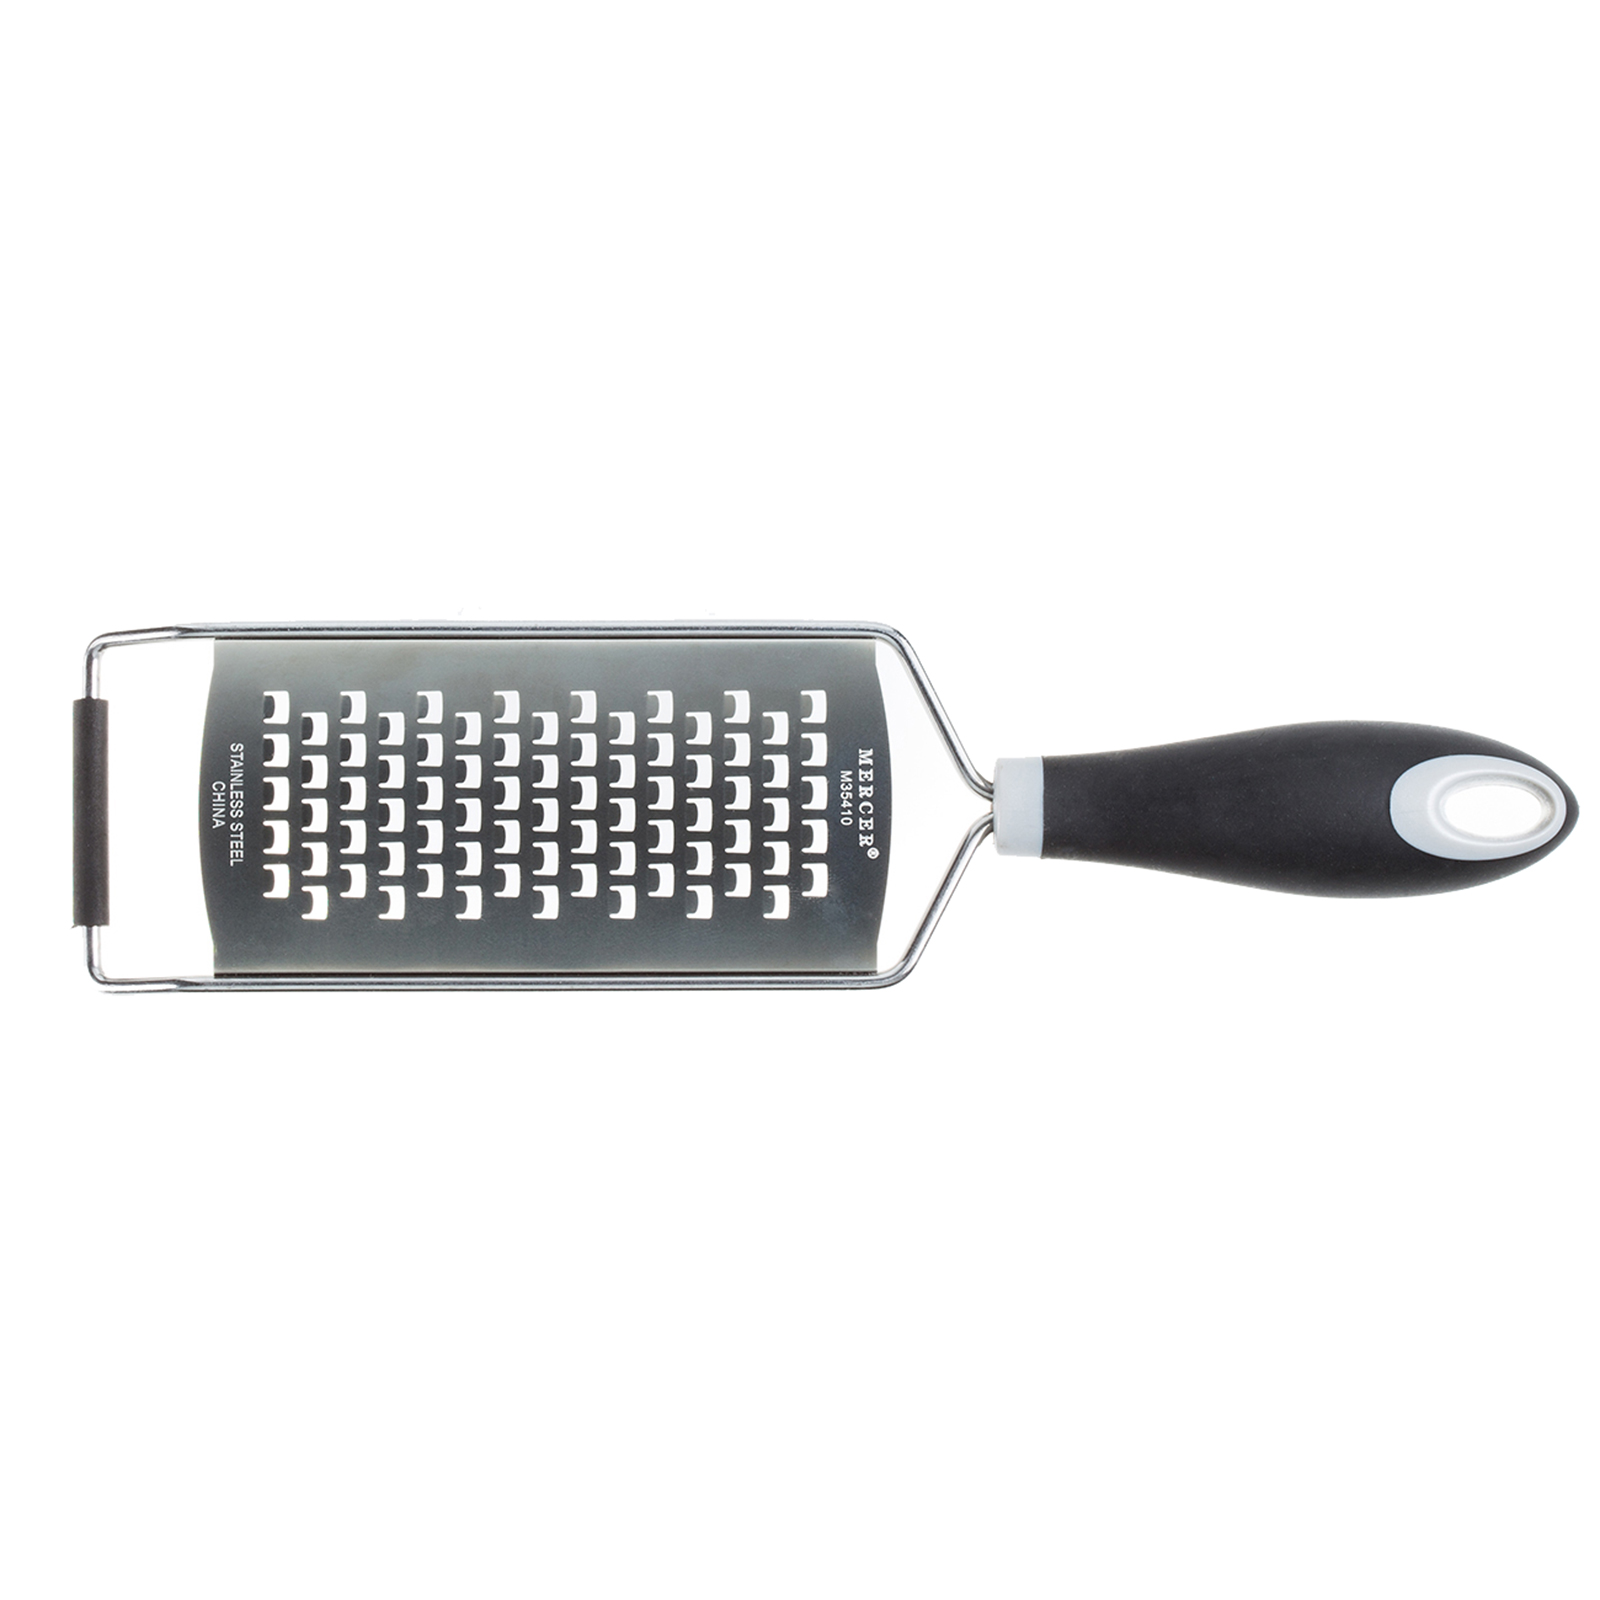 Mercer Culinary M35410 grater, manual